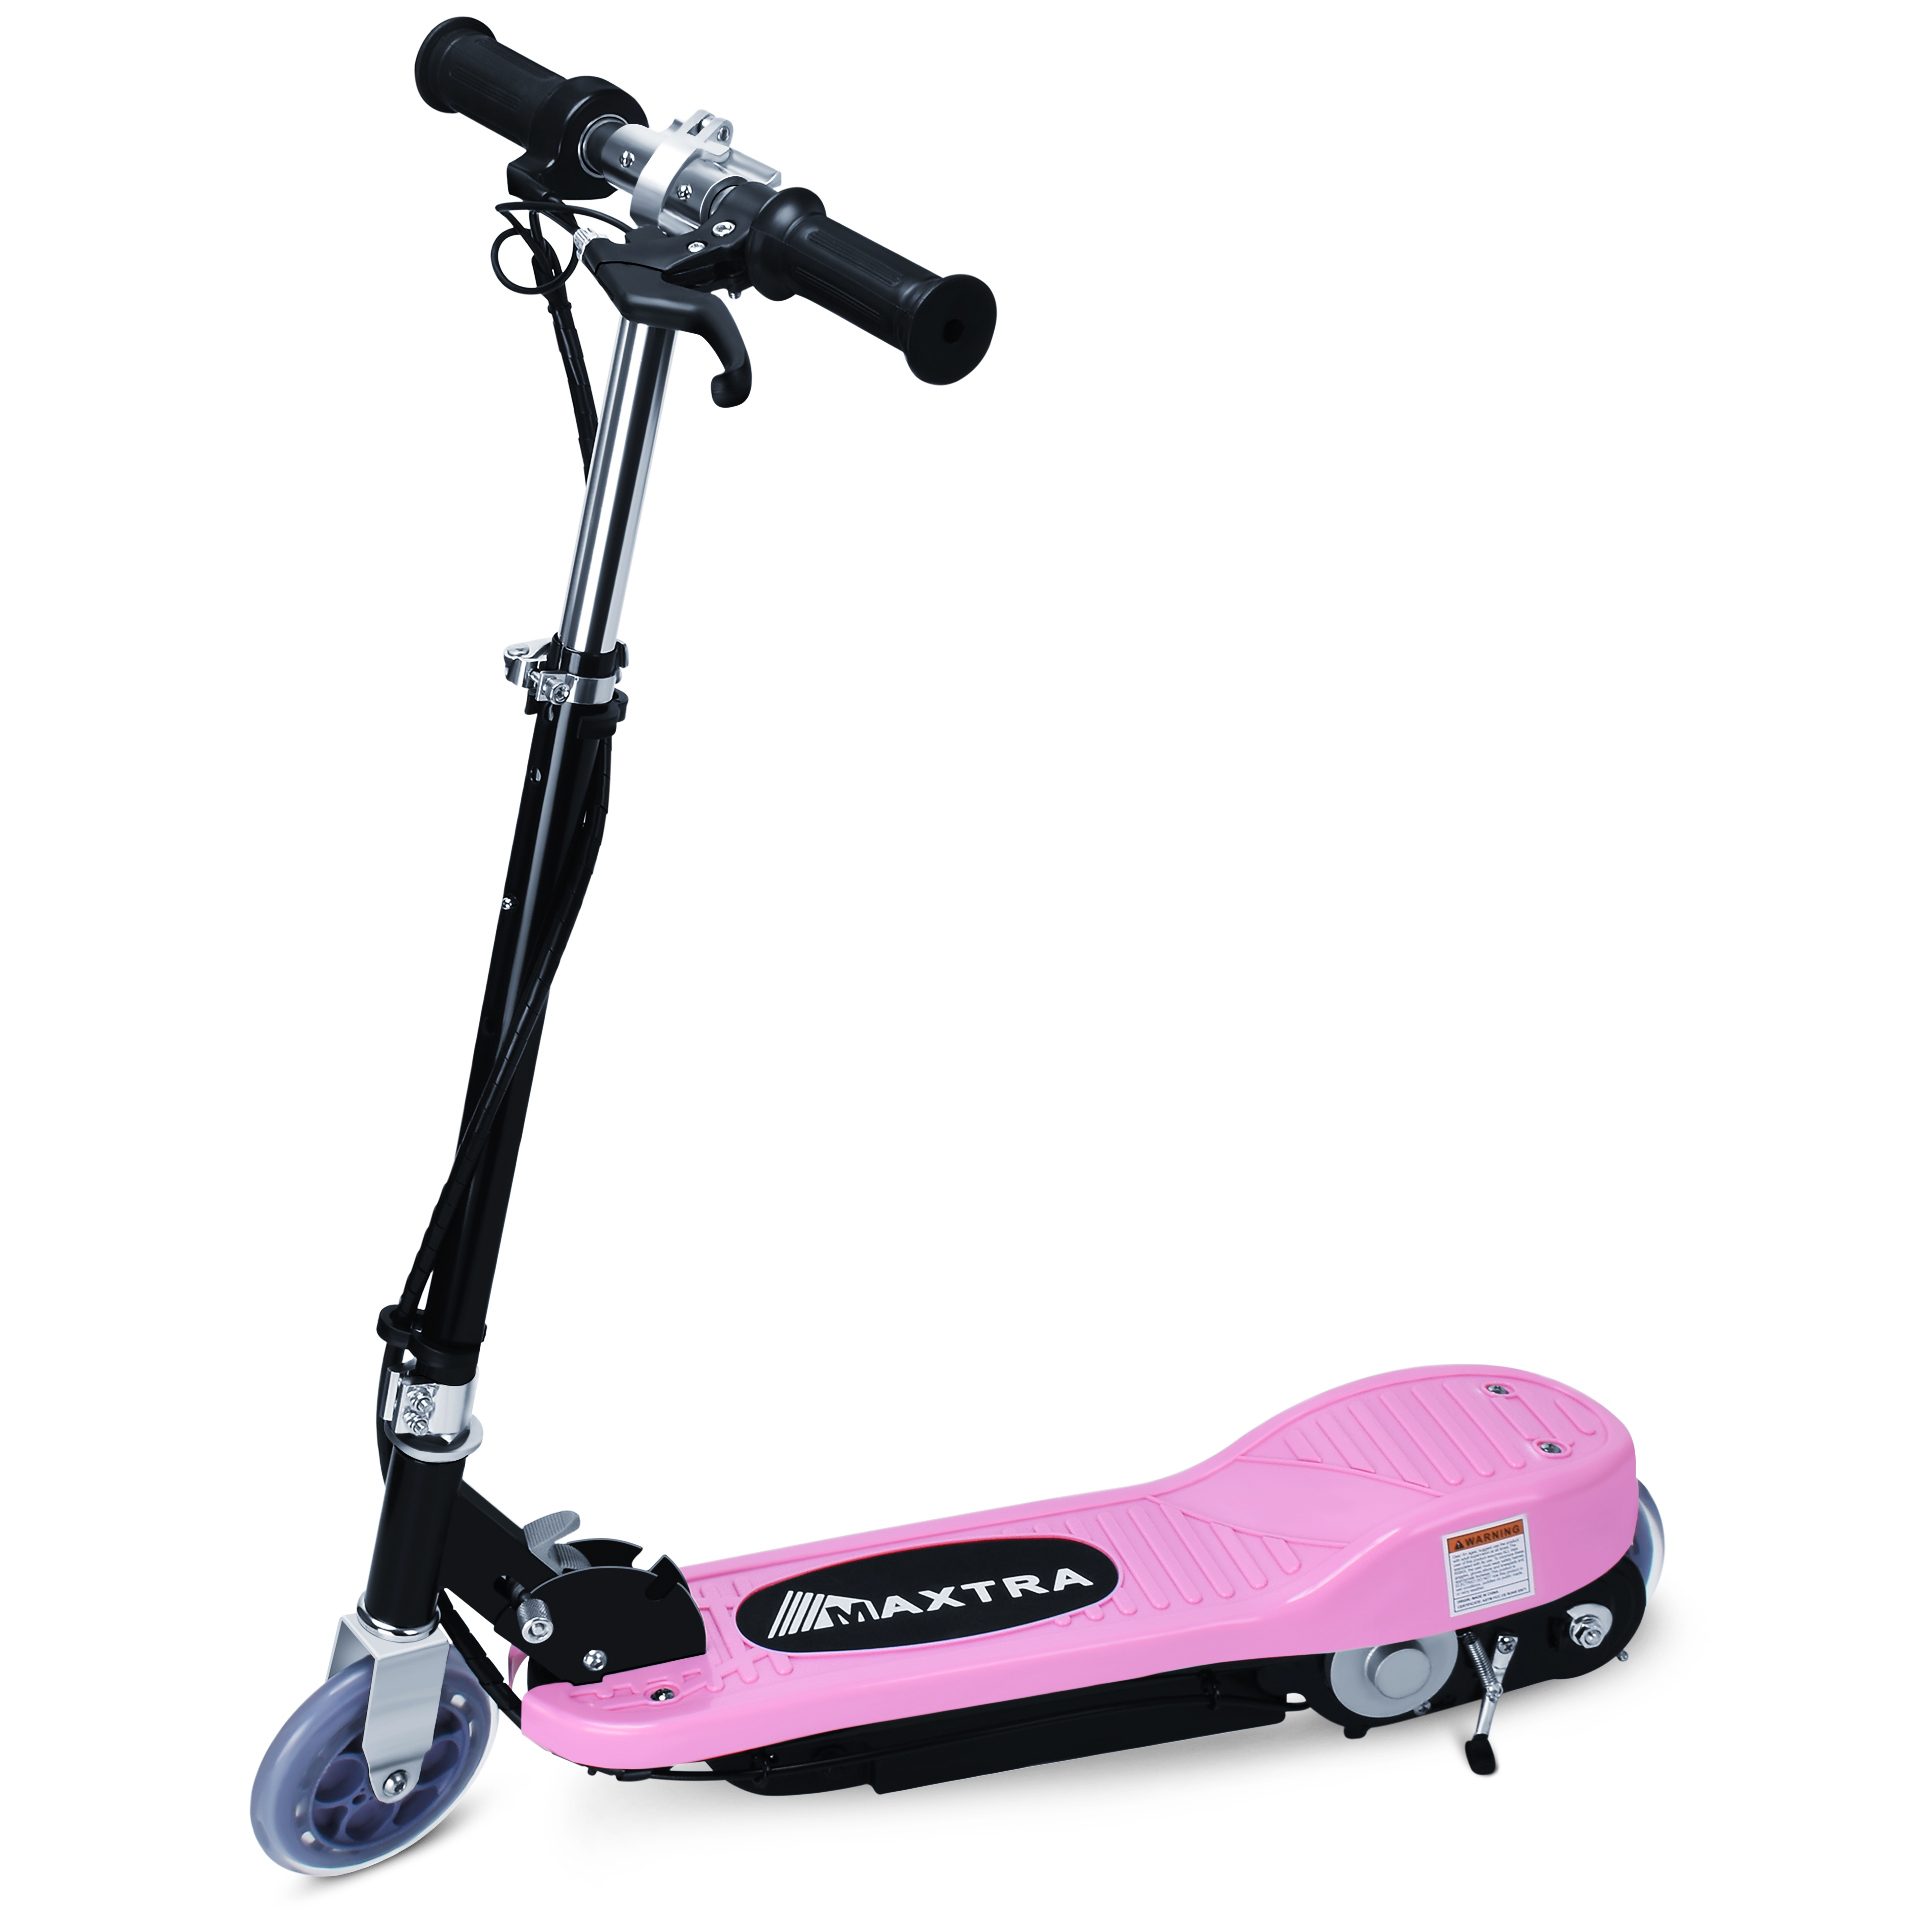 Maxtra ASTM Approved E120 160lbs Max Weight Capacity Electric Scooter Motorized Bike... by